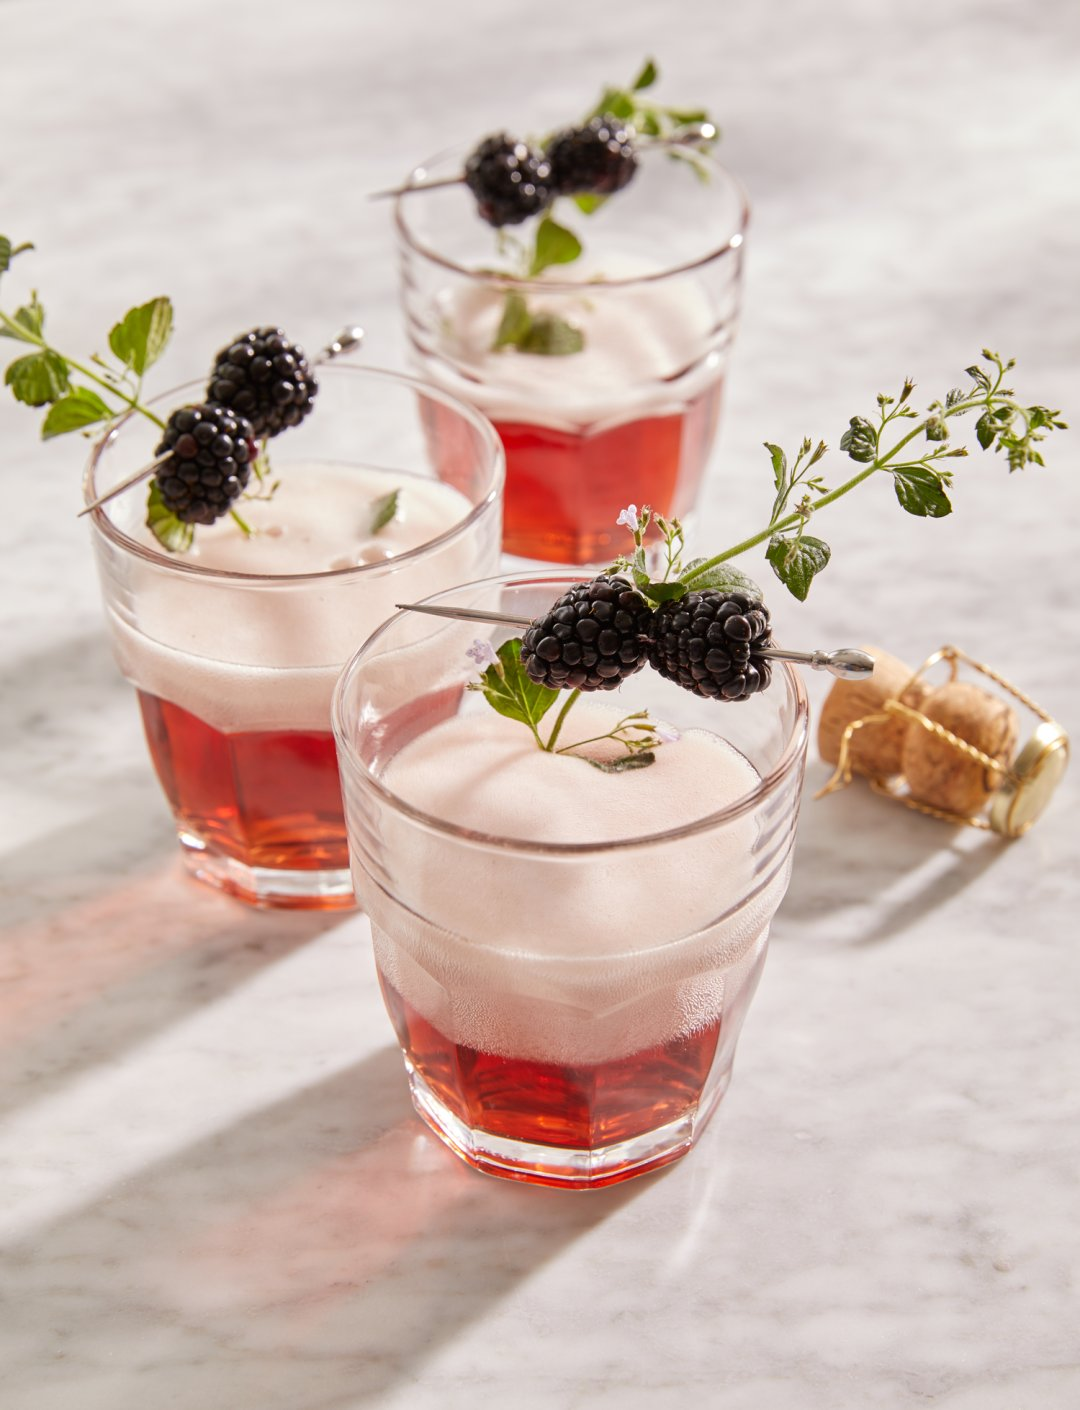 Kir Royale served with a blackberry garnish